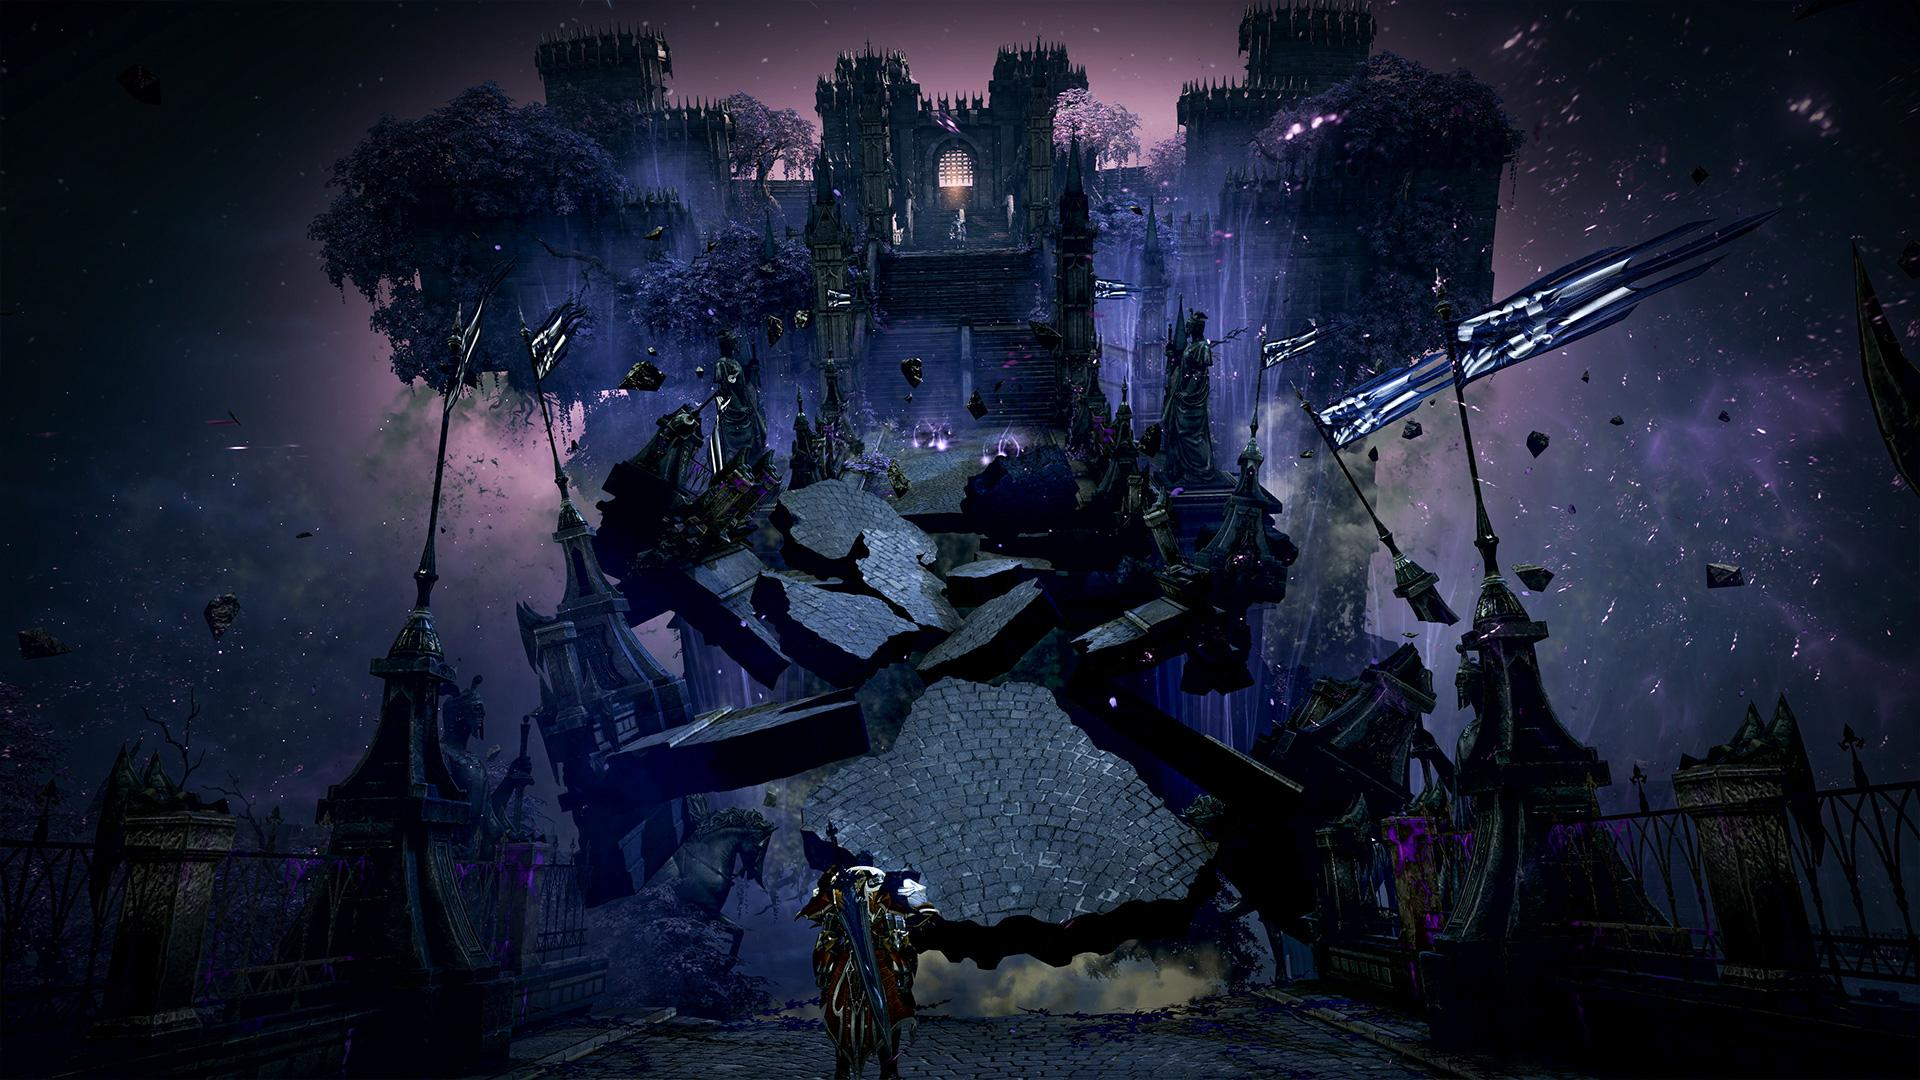 Lost Ark features a fantasy setting with gorgeous environments and broken realities